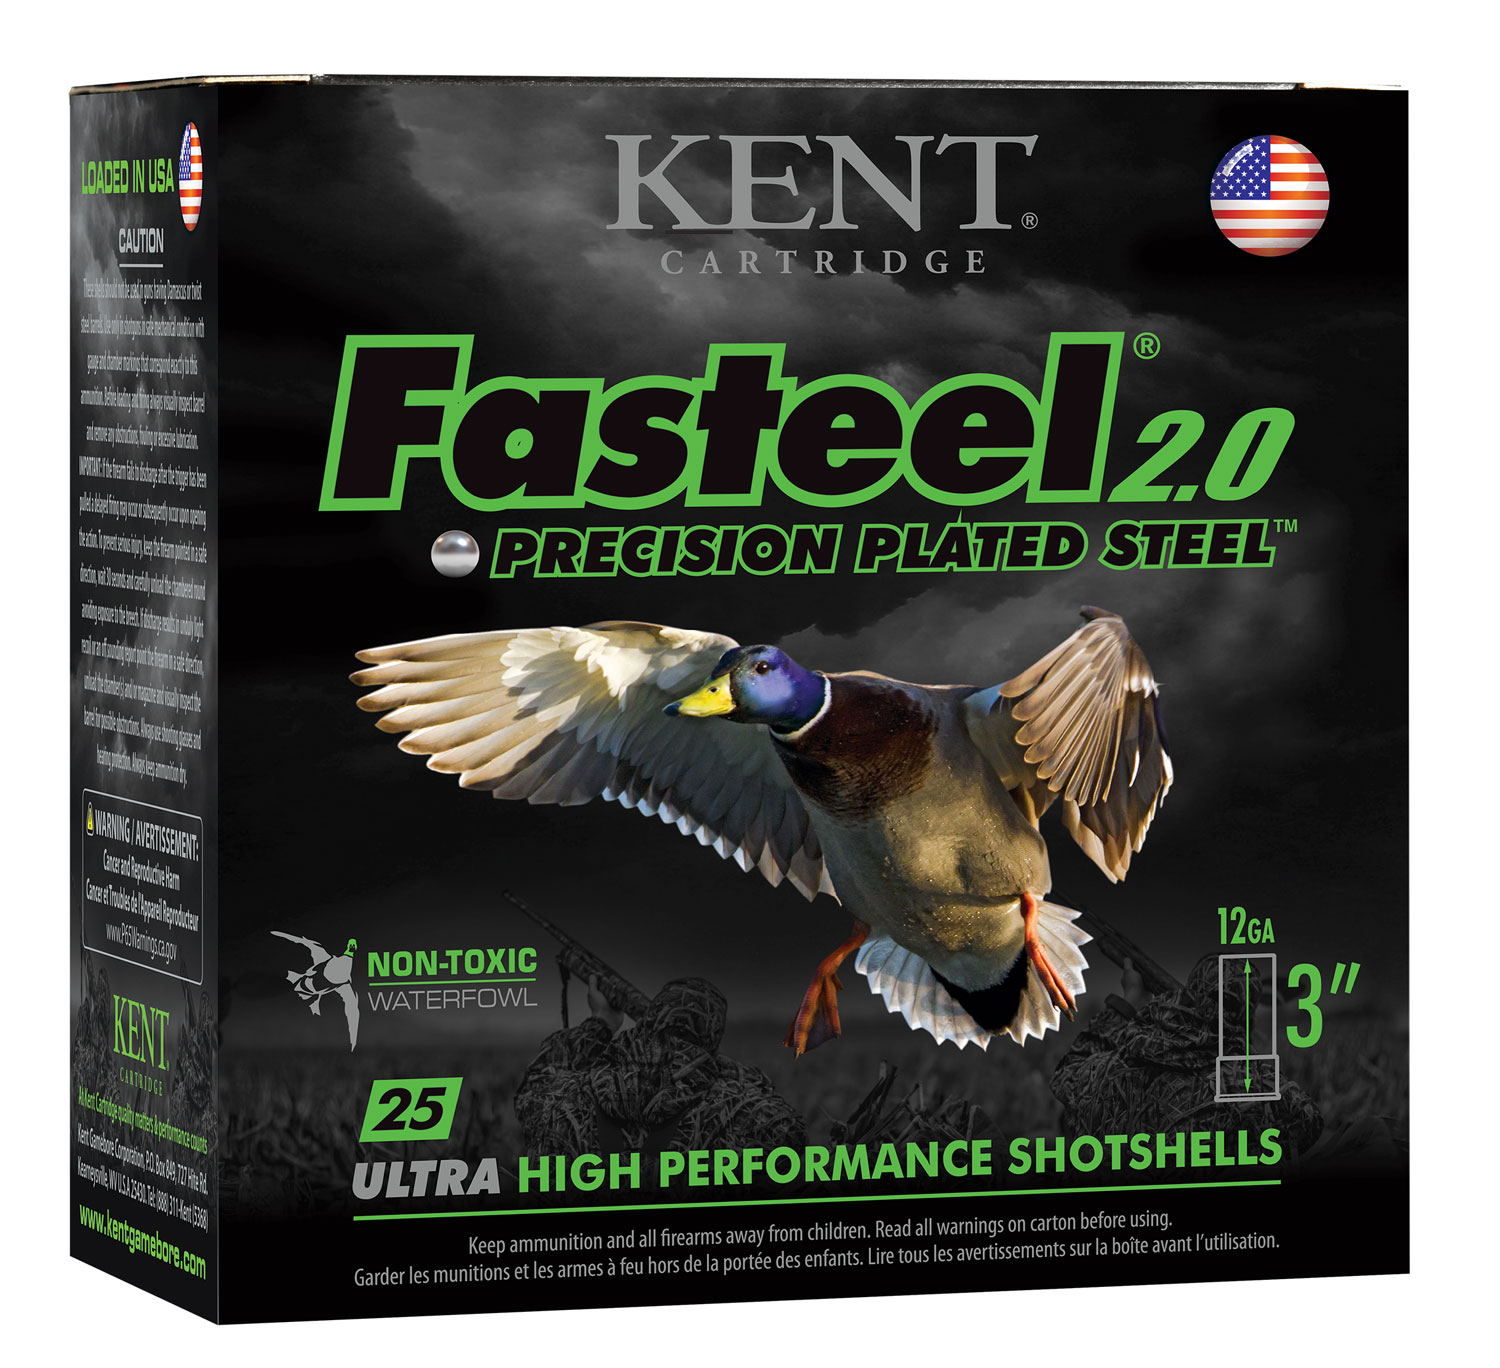 Kent Cartridge K123FS403 Fasteel Waterfowl 12 Gauge 3